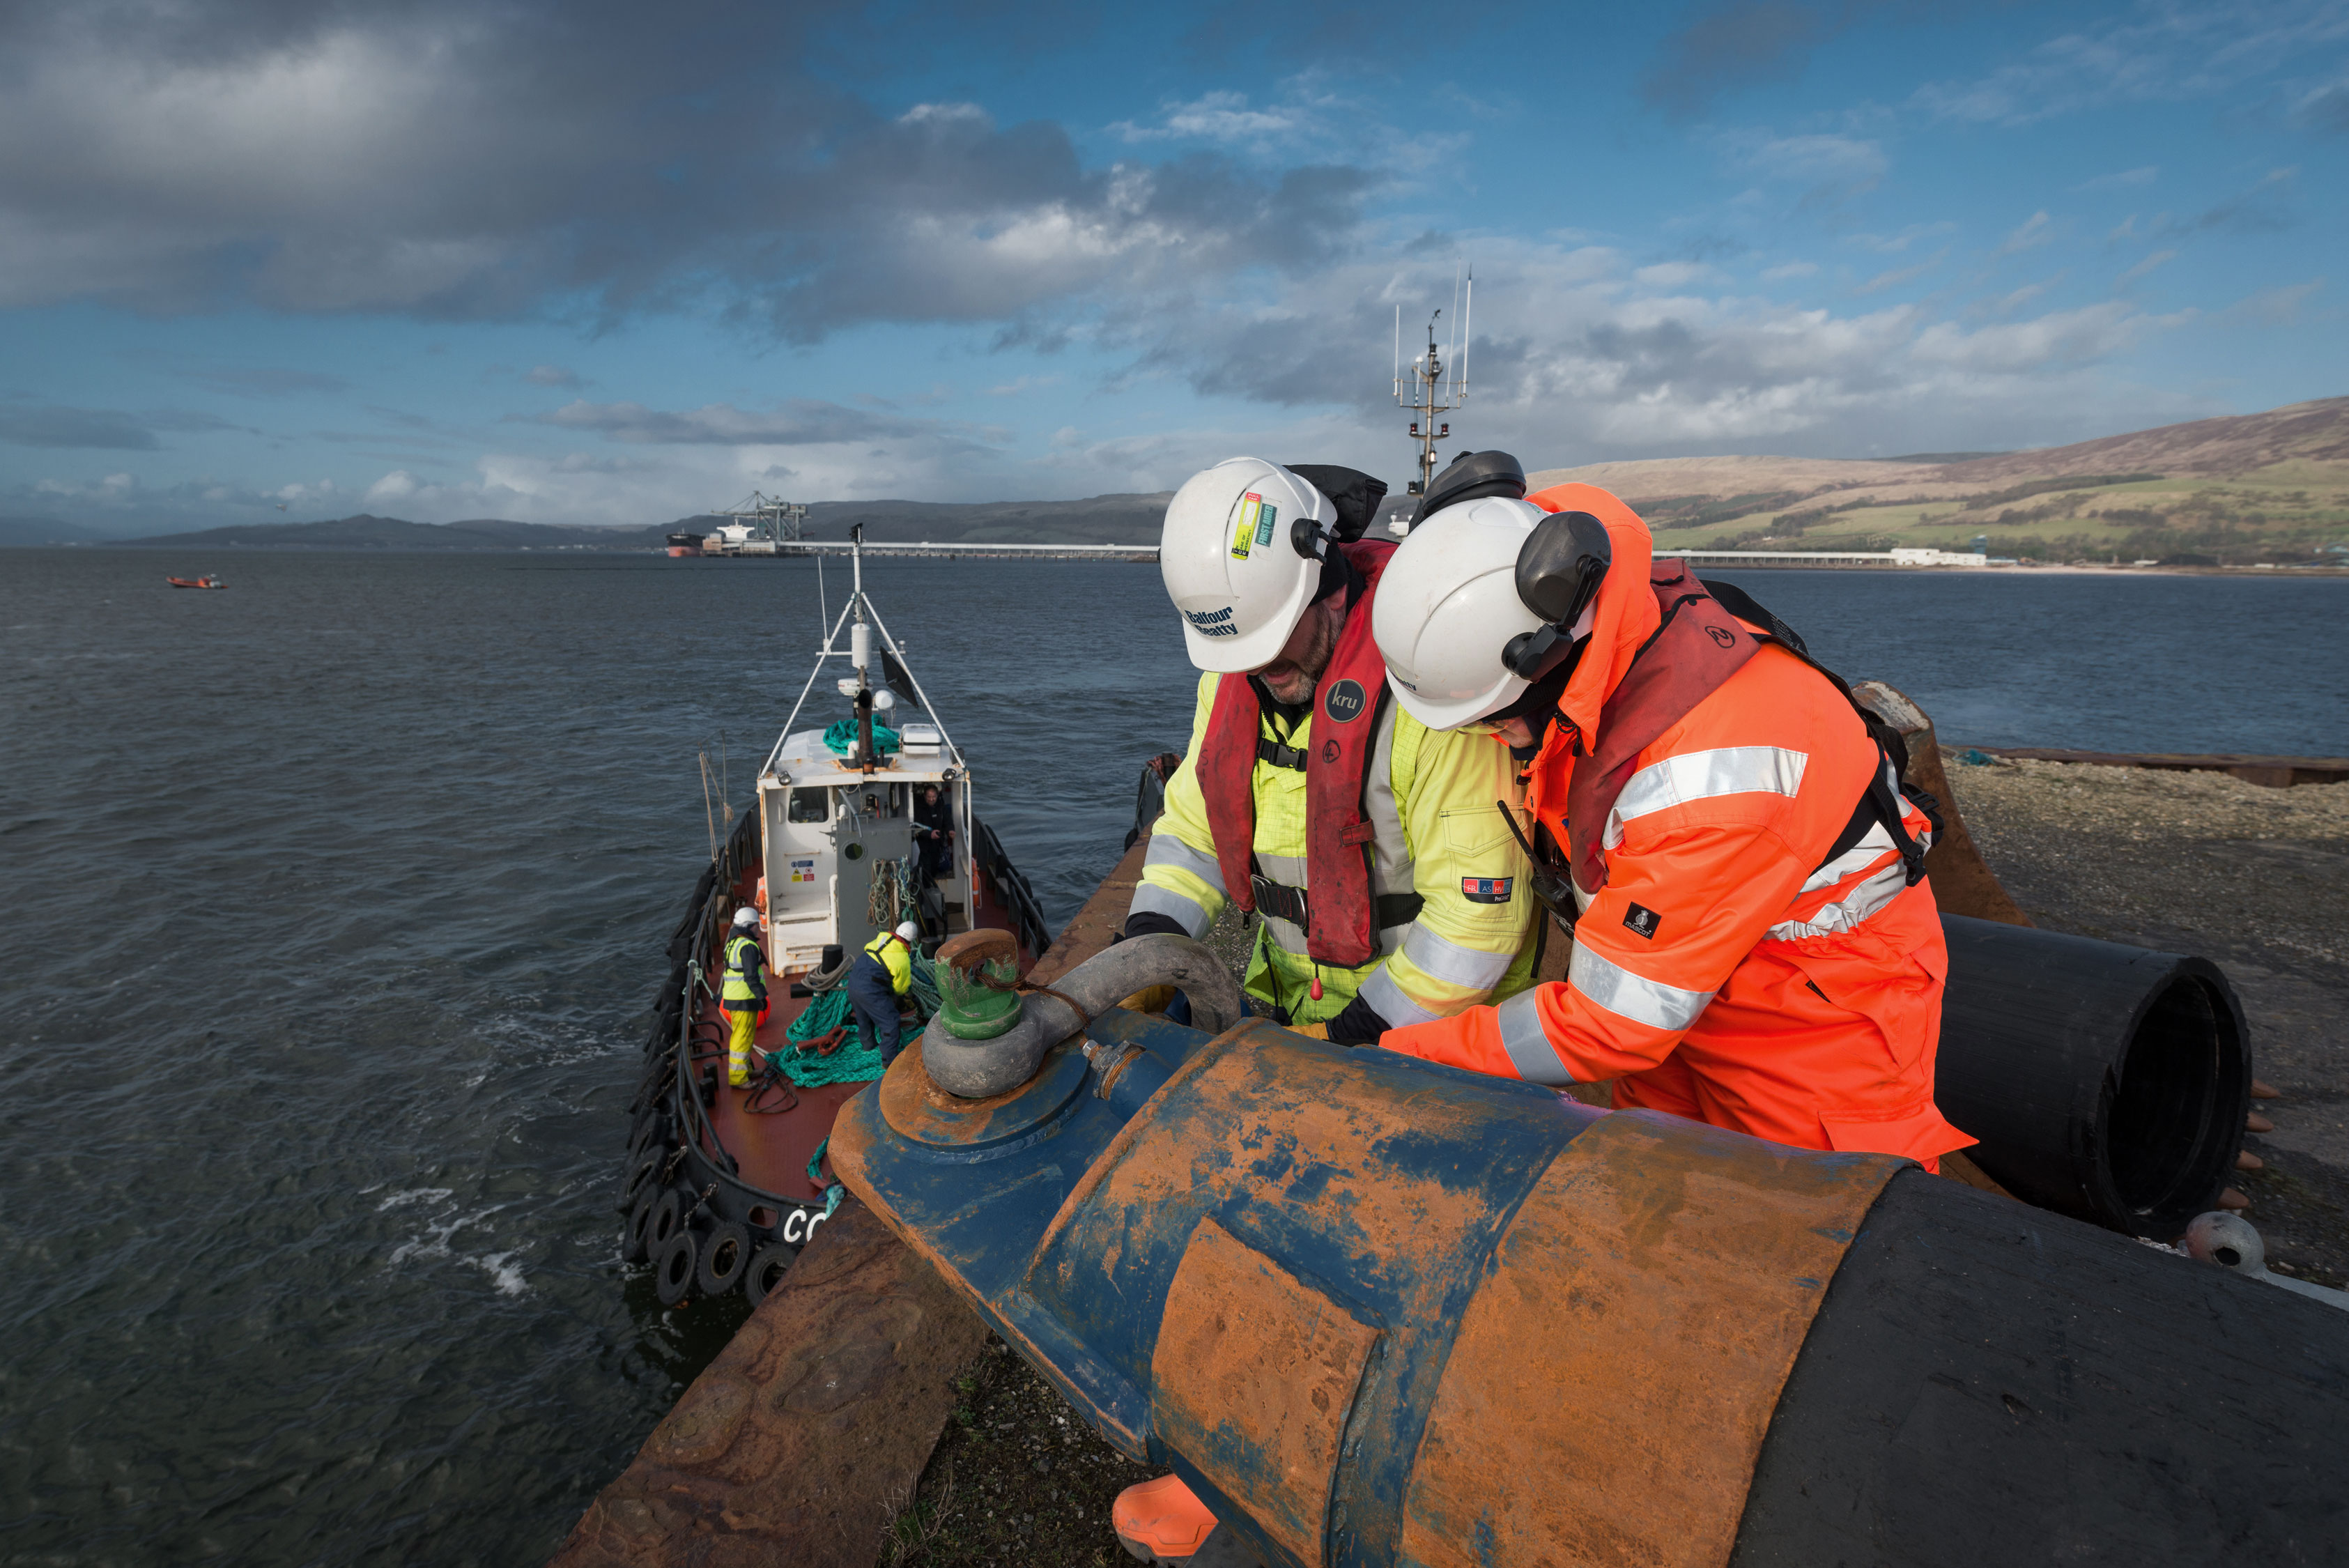 Men in hard hats working on laying pipes by sea, hunterston, scotland